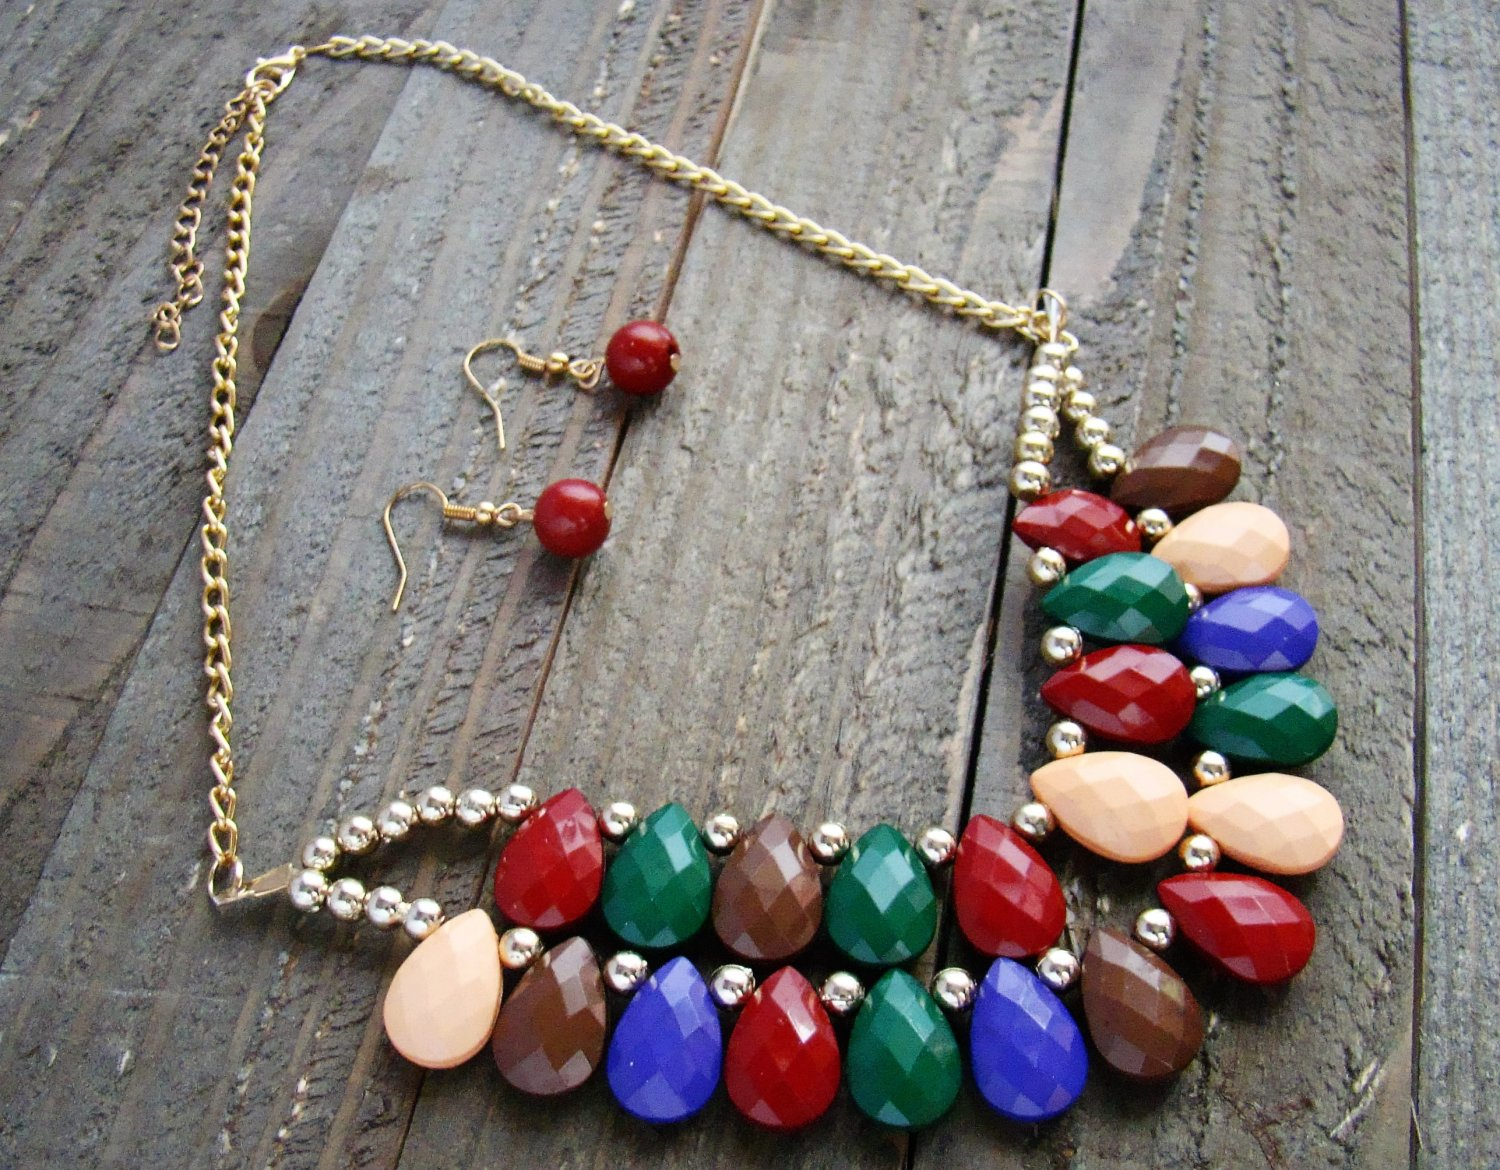 Multi-Color Tear Drop Bead Adjustable Chain Fashion Statement Bib Necklace Earrings Jewelry